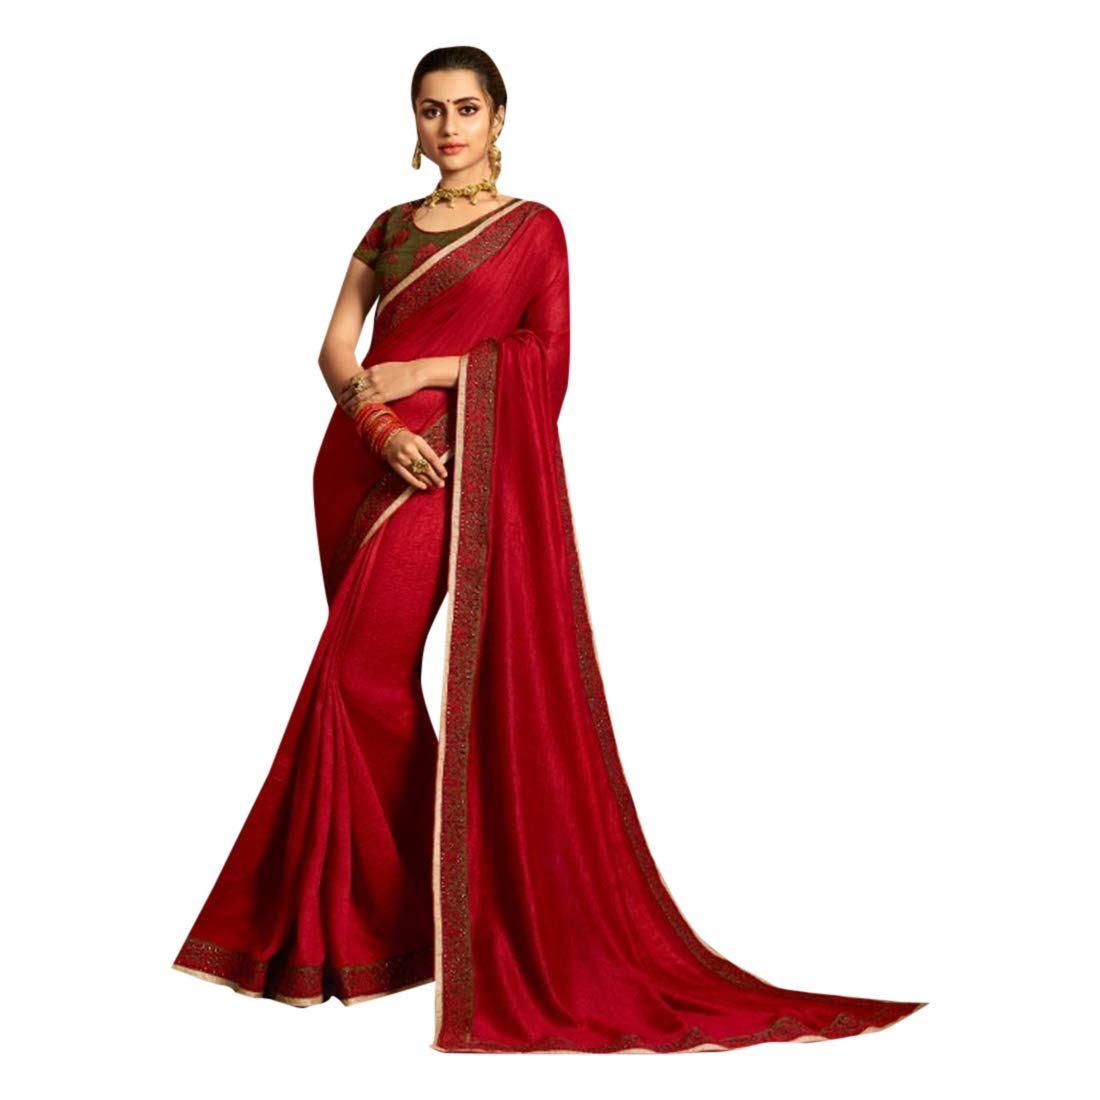 Red Fancy Party wear Georgette Sari with Bangalore Silk Blouse Designer Indian Saree for Women 7614